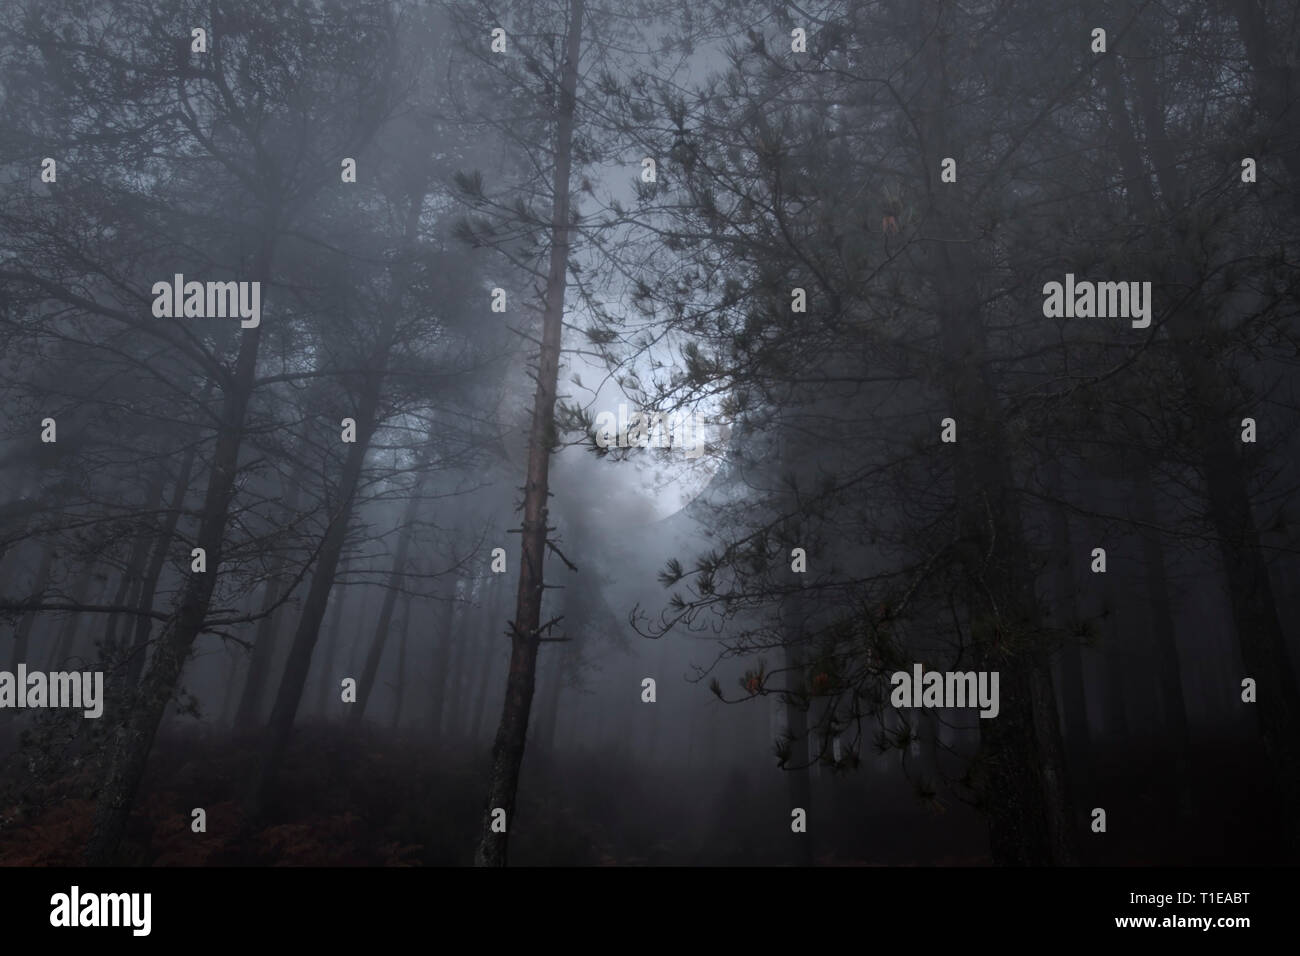 Full moon rising in a mysty dense woods at dusk or night - Stock Image